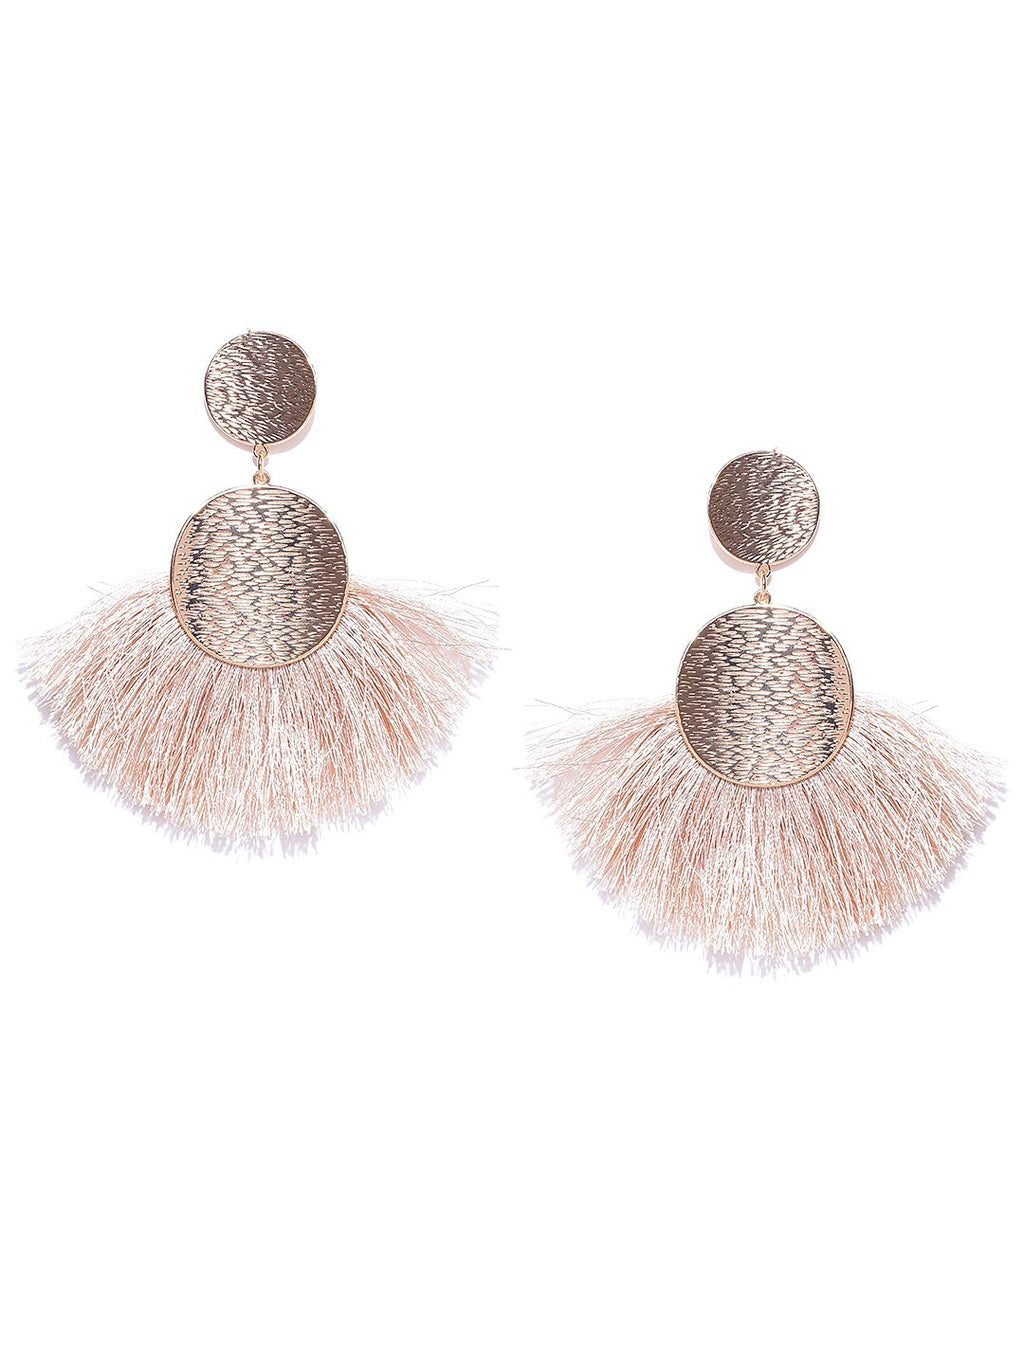 Blueberry gold and beige fringes drop earrings